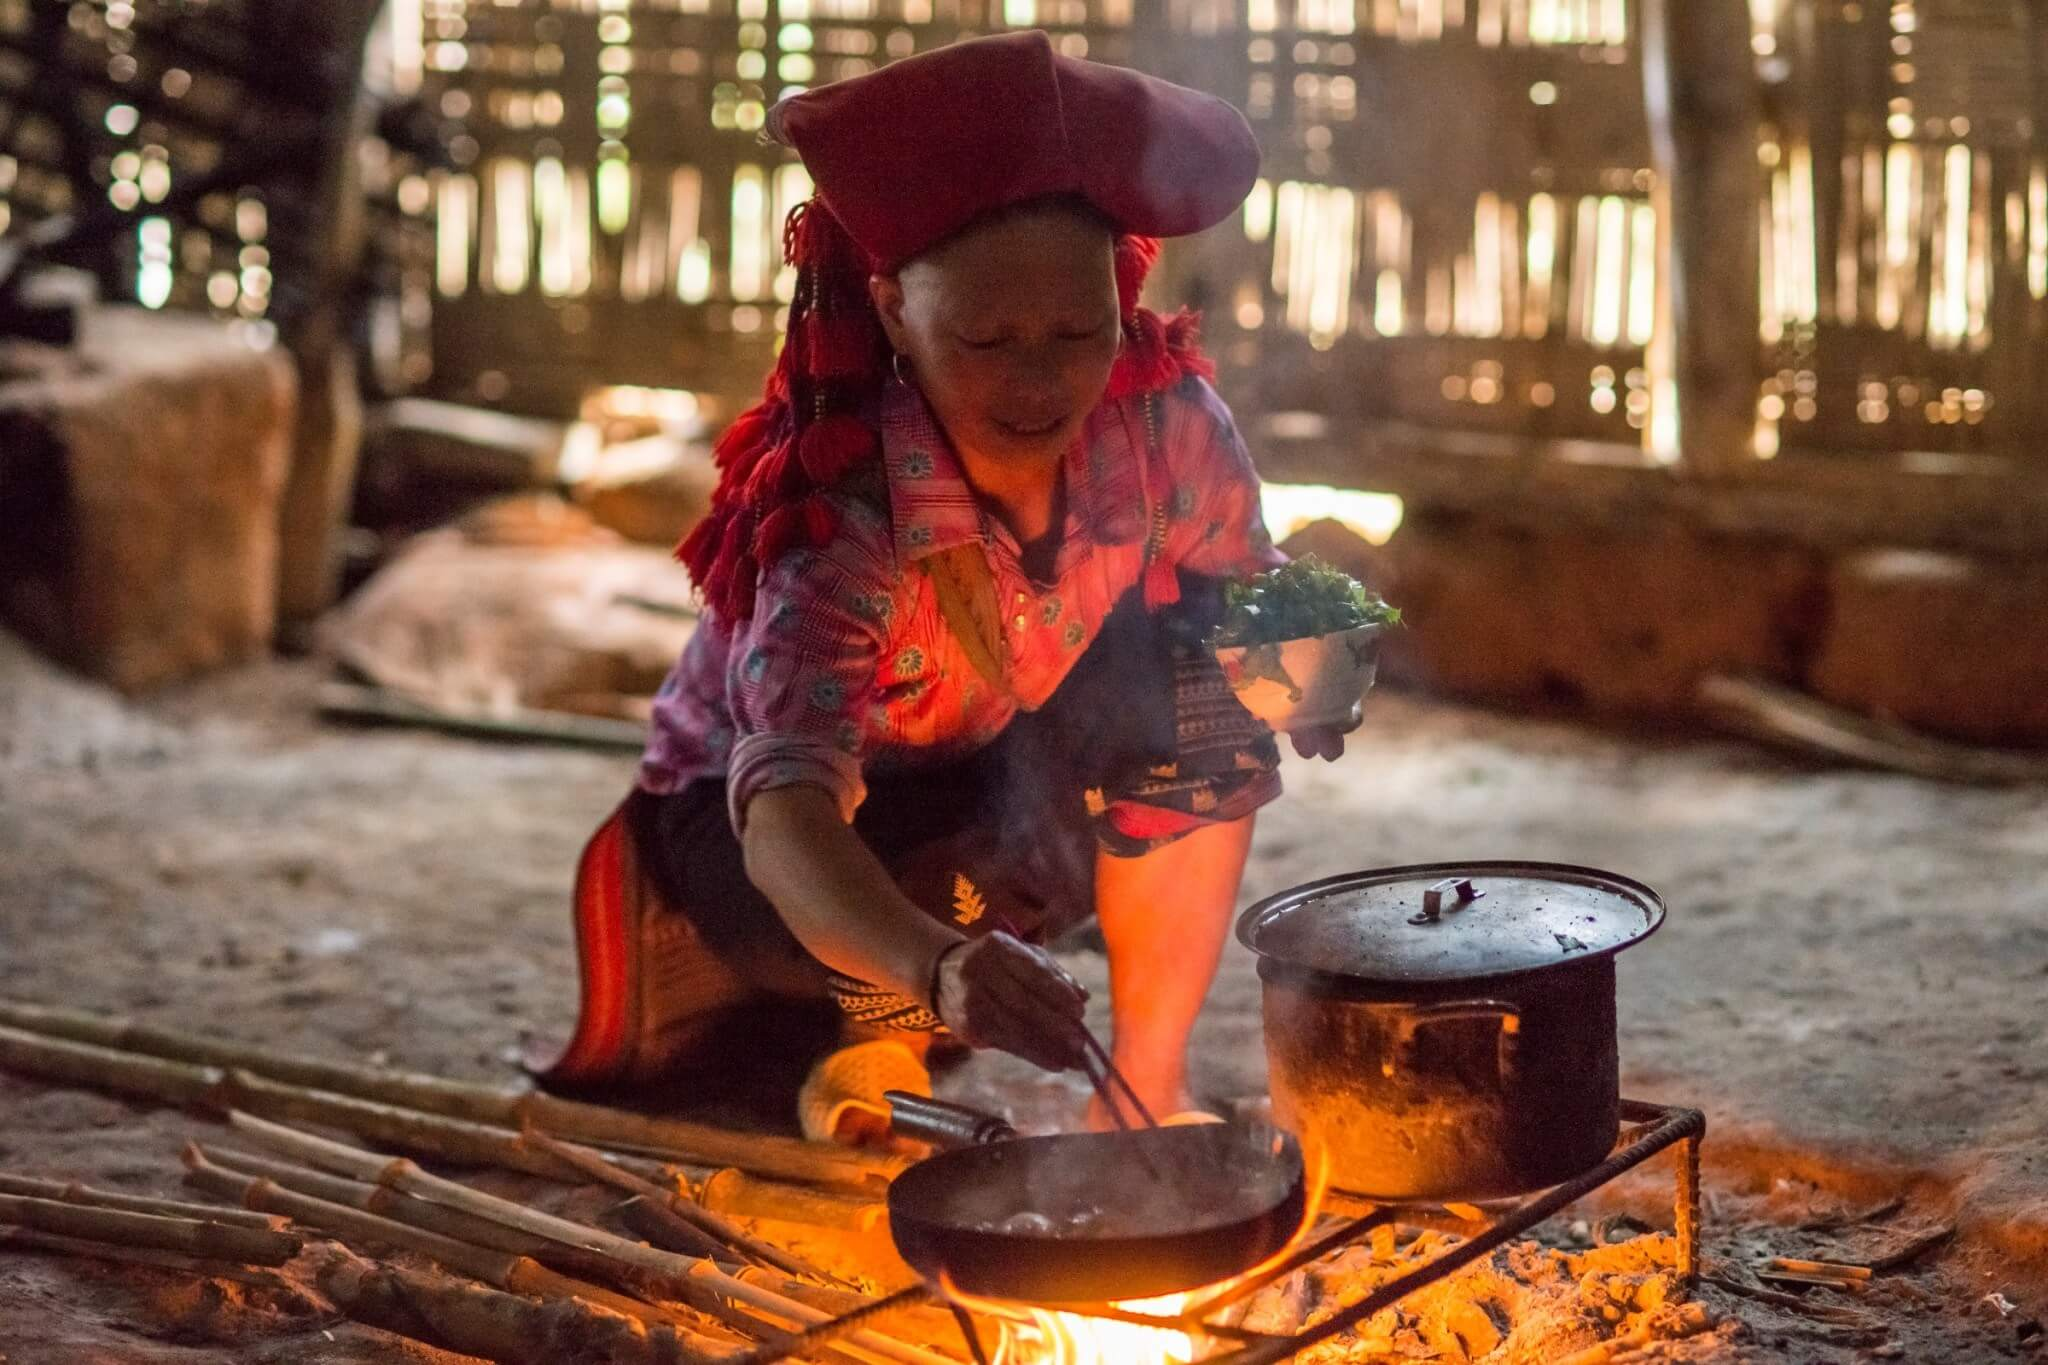 an old lady cooking food on mud stove